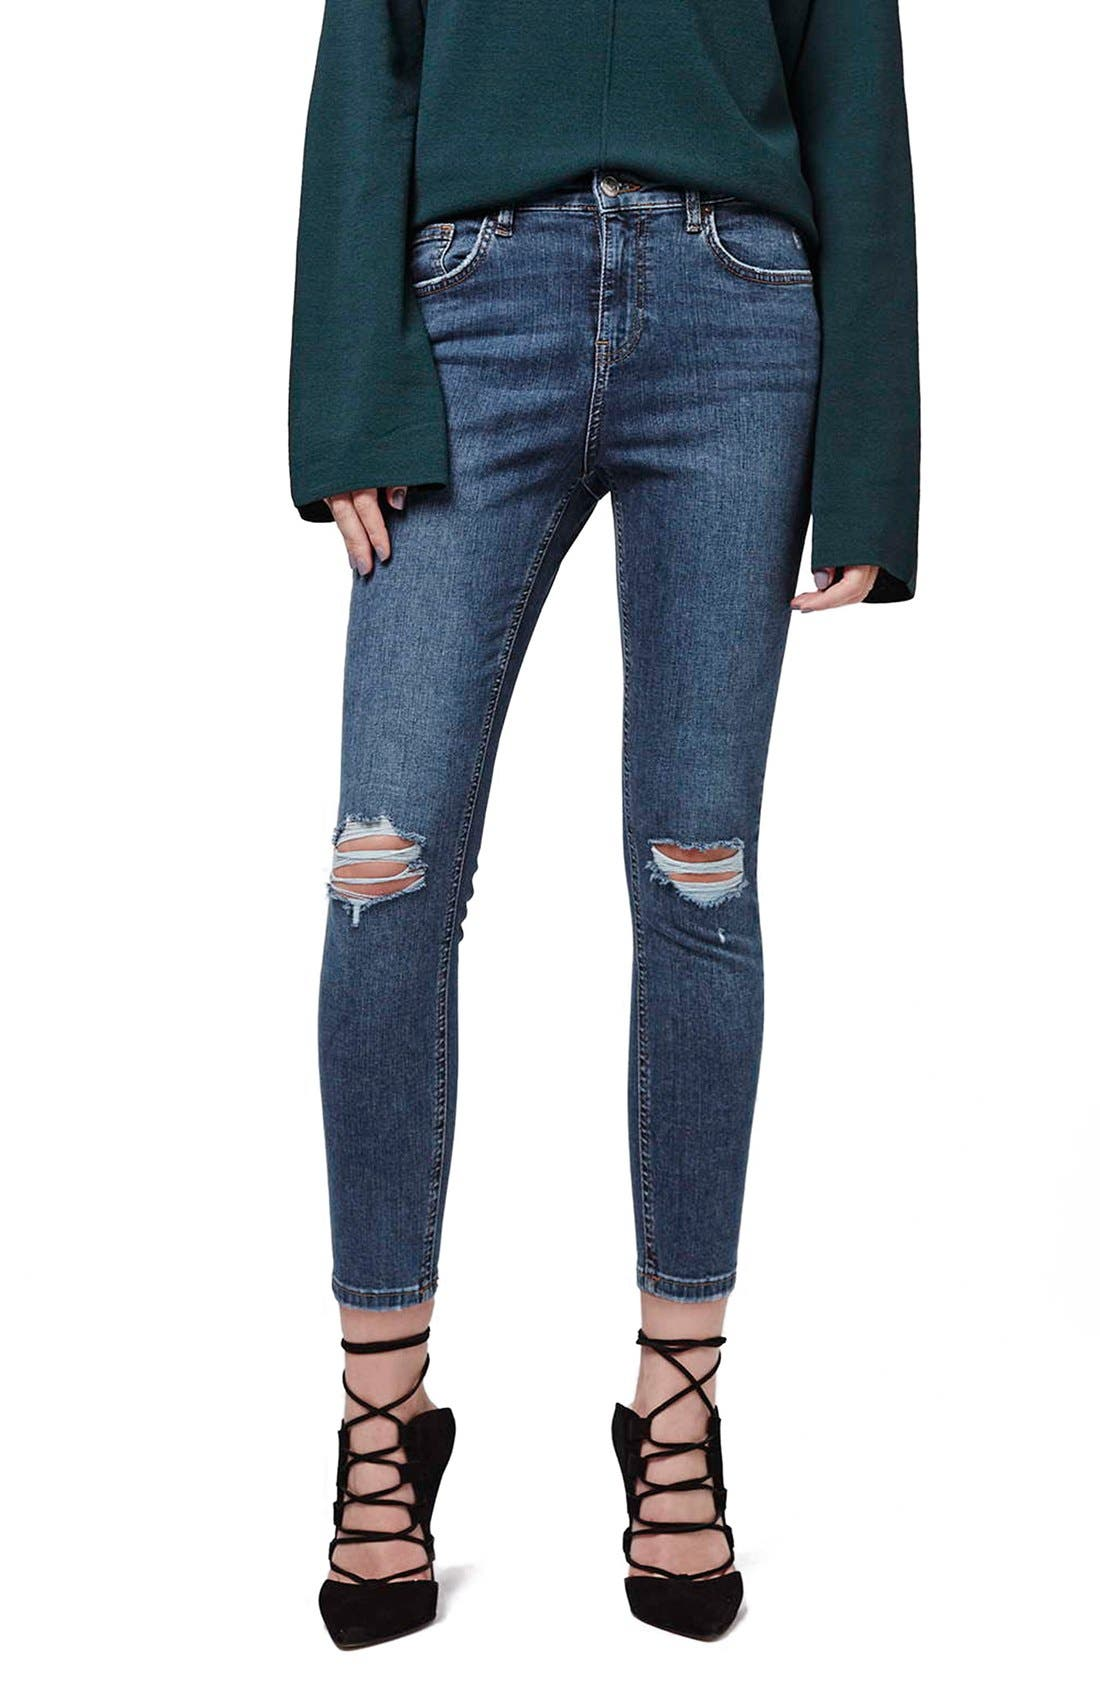 TOPSHOP, Moto 'Jamie' Ripped Skinny Ankle Jeans, Main thumbnail 1, color, MID DENIM